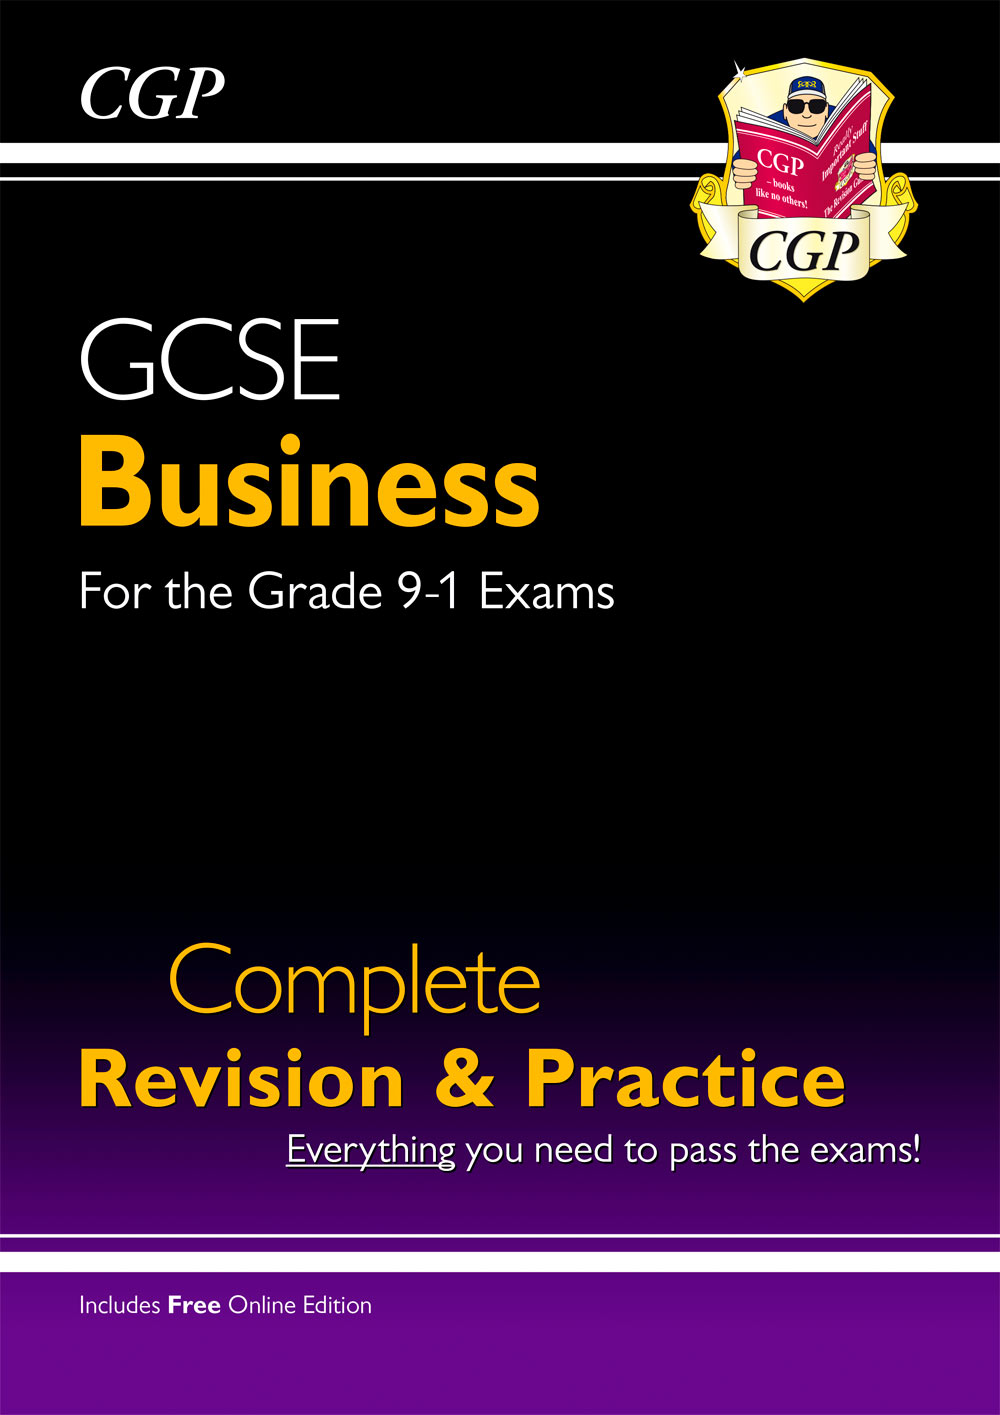 BUHS44 - New GCSE Business Complete Revision and Practice - for the Grade 9-1 Course (with Online Ed